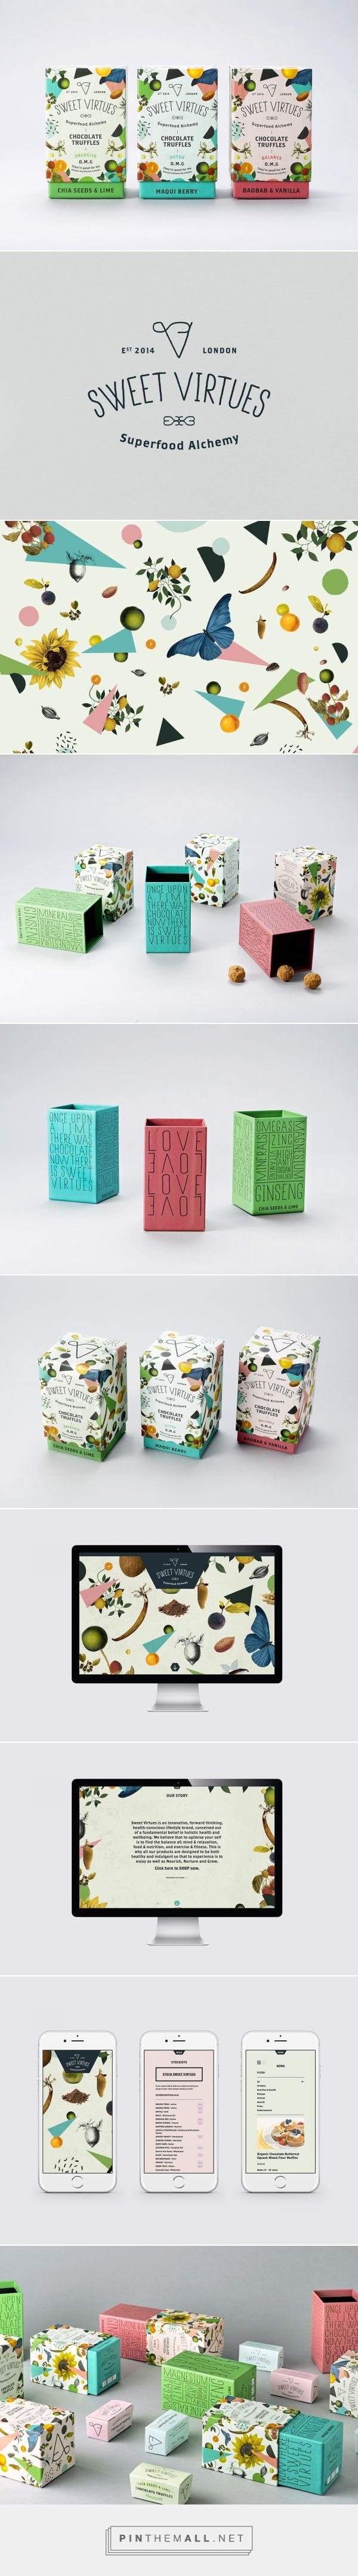 Sweet Virtues Superfood Branding and Packaging by Iwant Design   Fivestar Branding Agency – Design and Branding Agency & Curated Inspiration Gallery